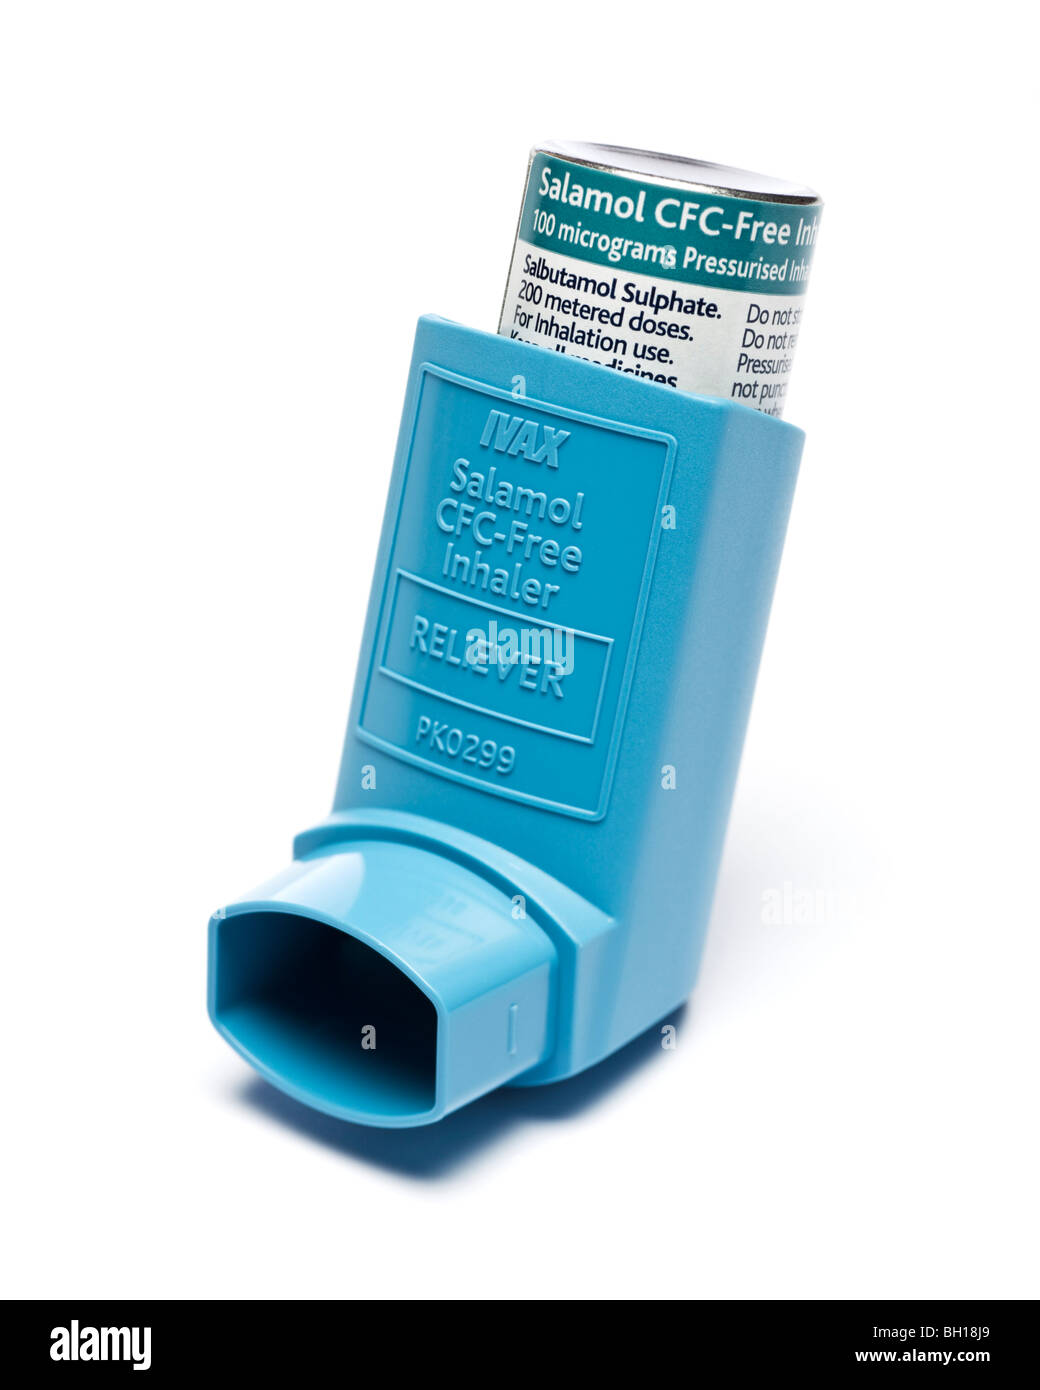 Ventolin / Salbutamol Asthma inhaler close up selective focus - Stock Image